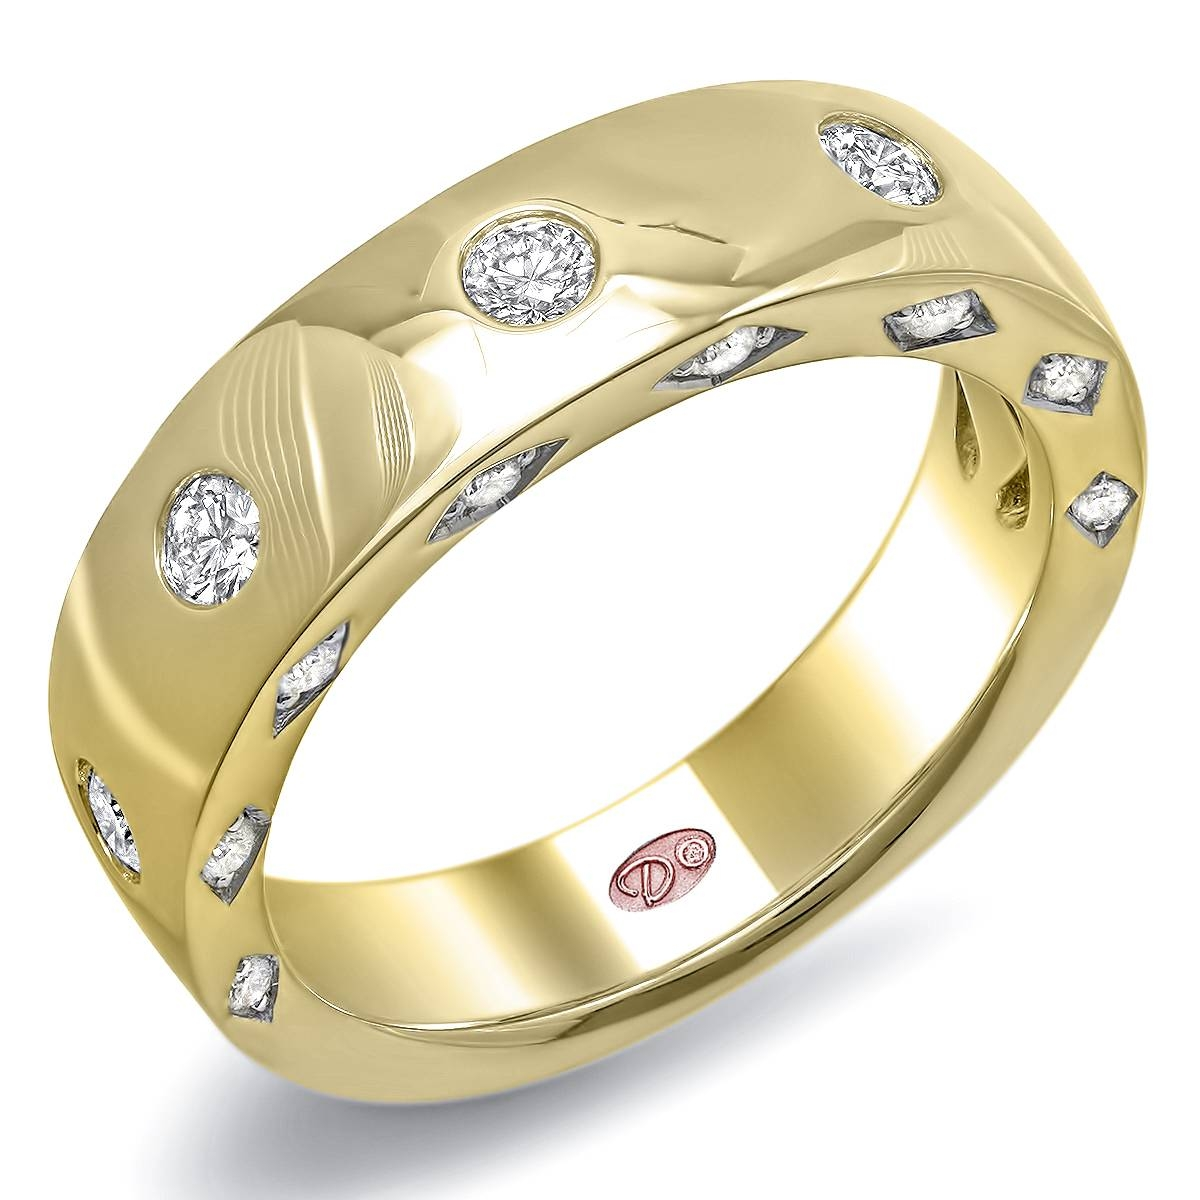 Mens | Demarco Bridal Jewelry Official Blog With Mens Engagement Rings Designs (View 8 of 15)